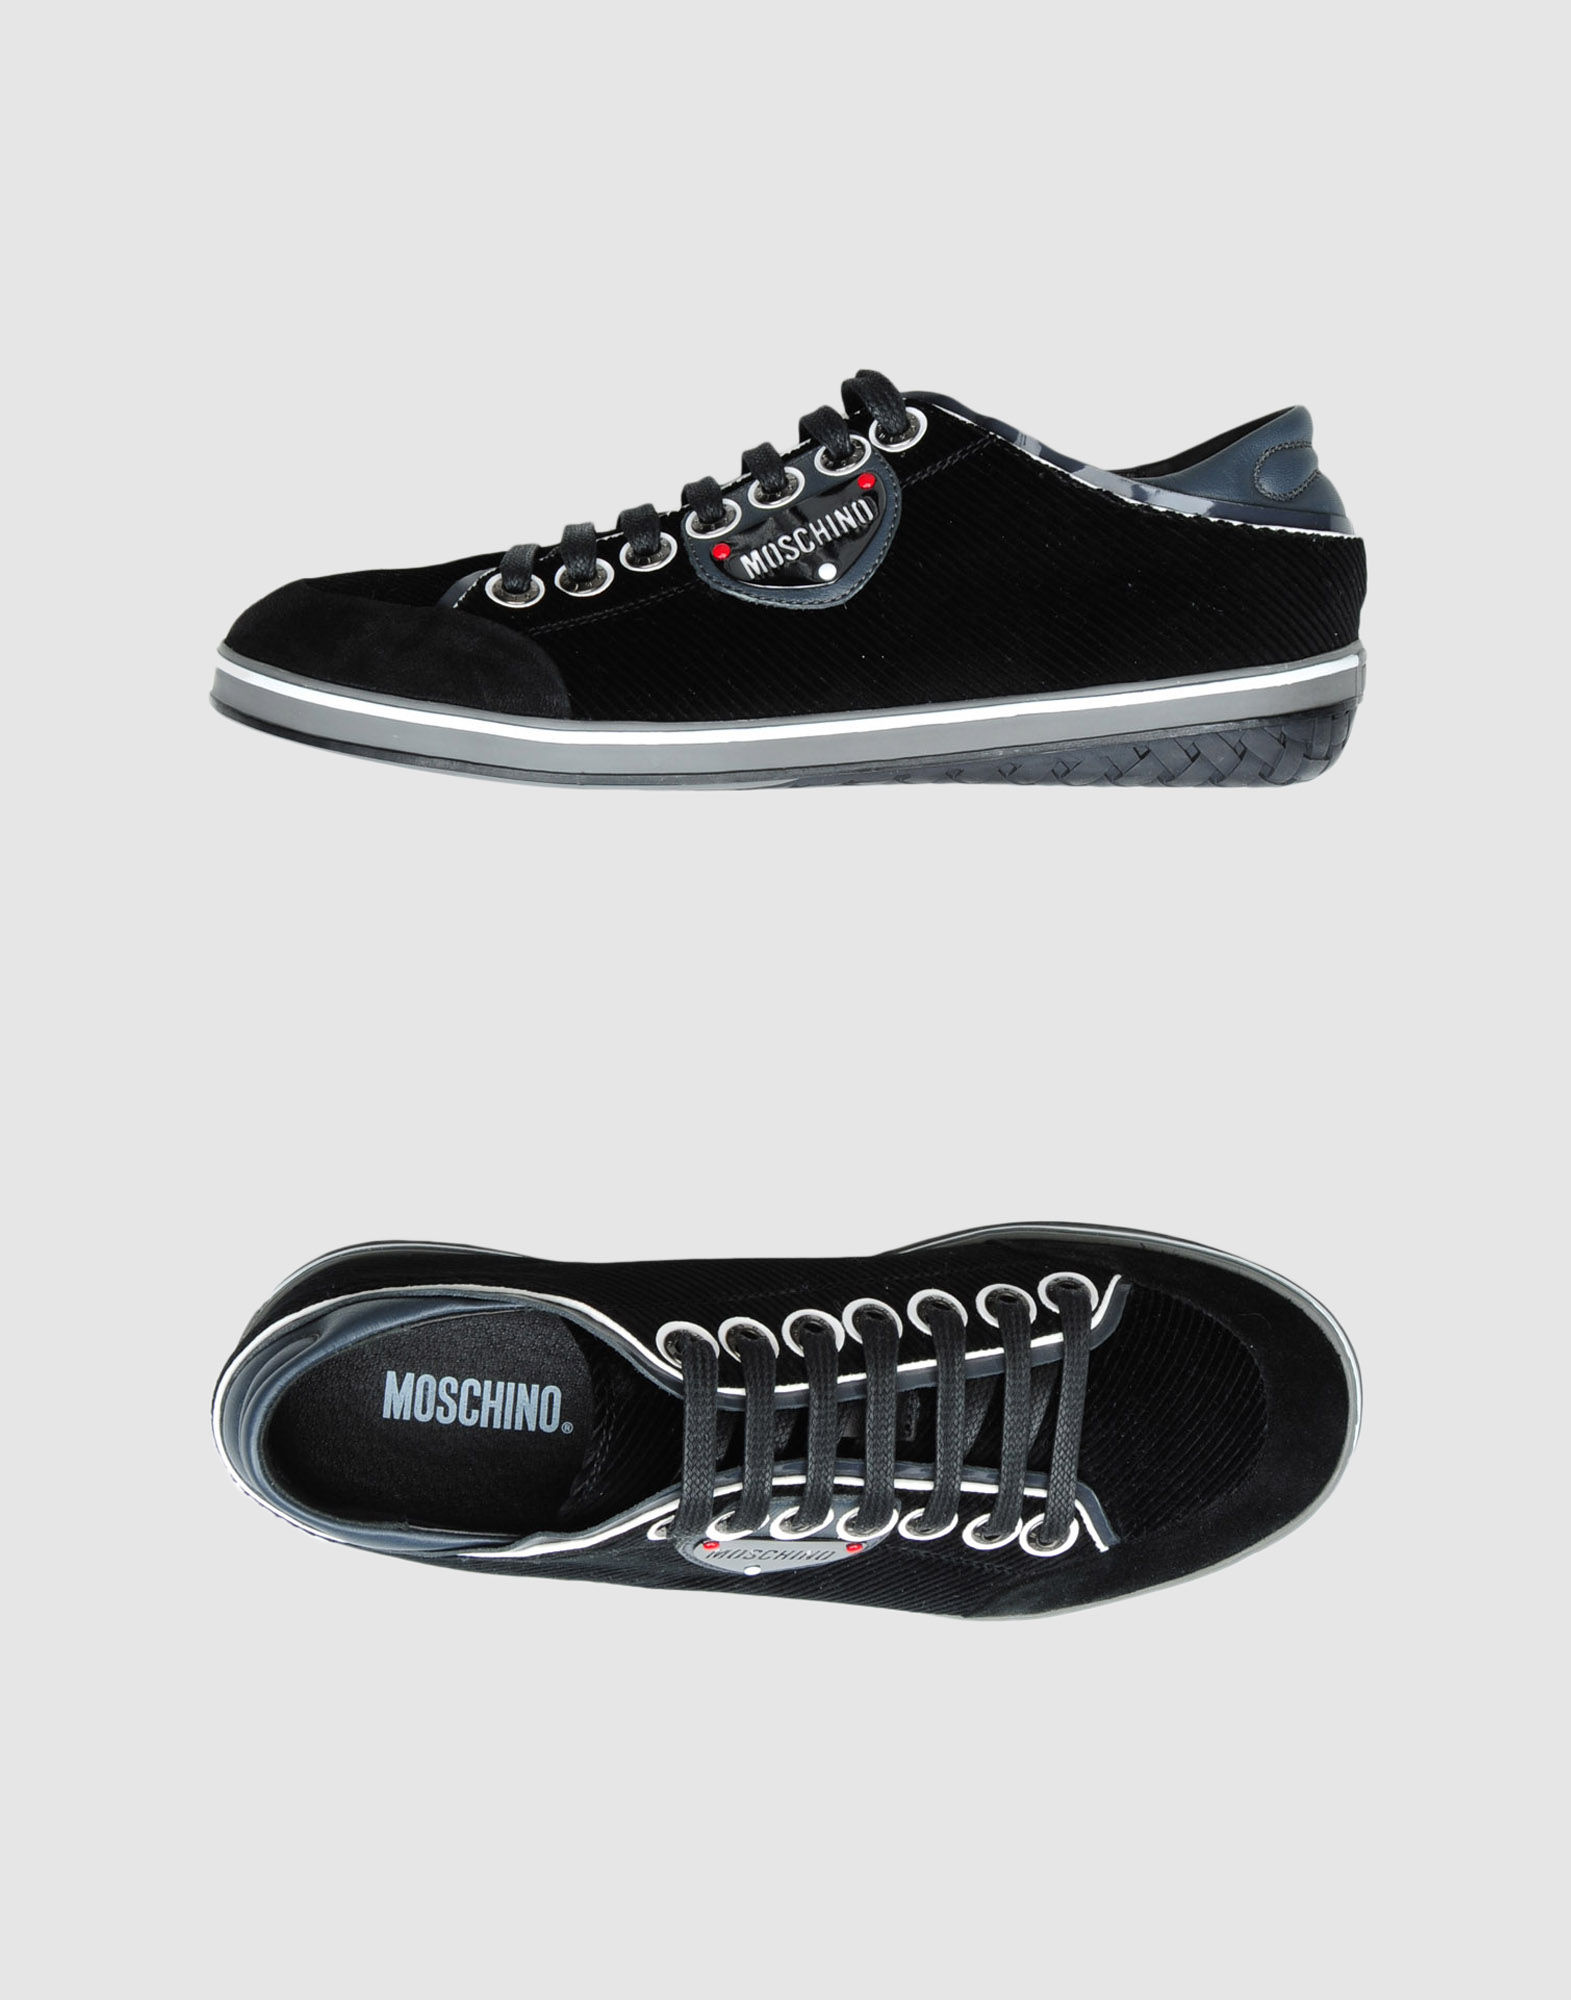 chion sports shoes 28 images chion sport comfort shoes 28 images wholesale in china payless